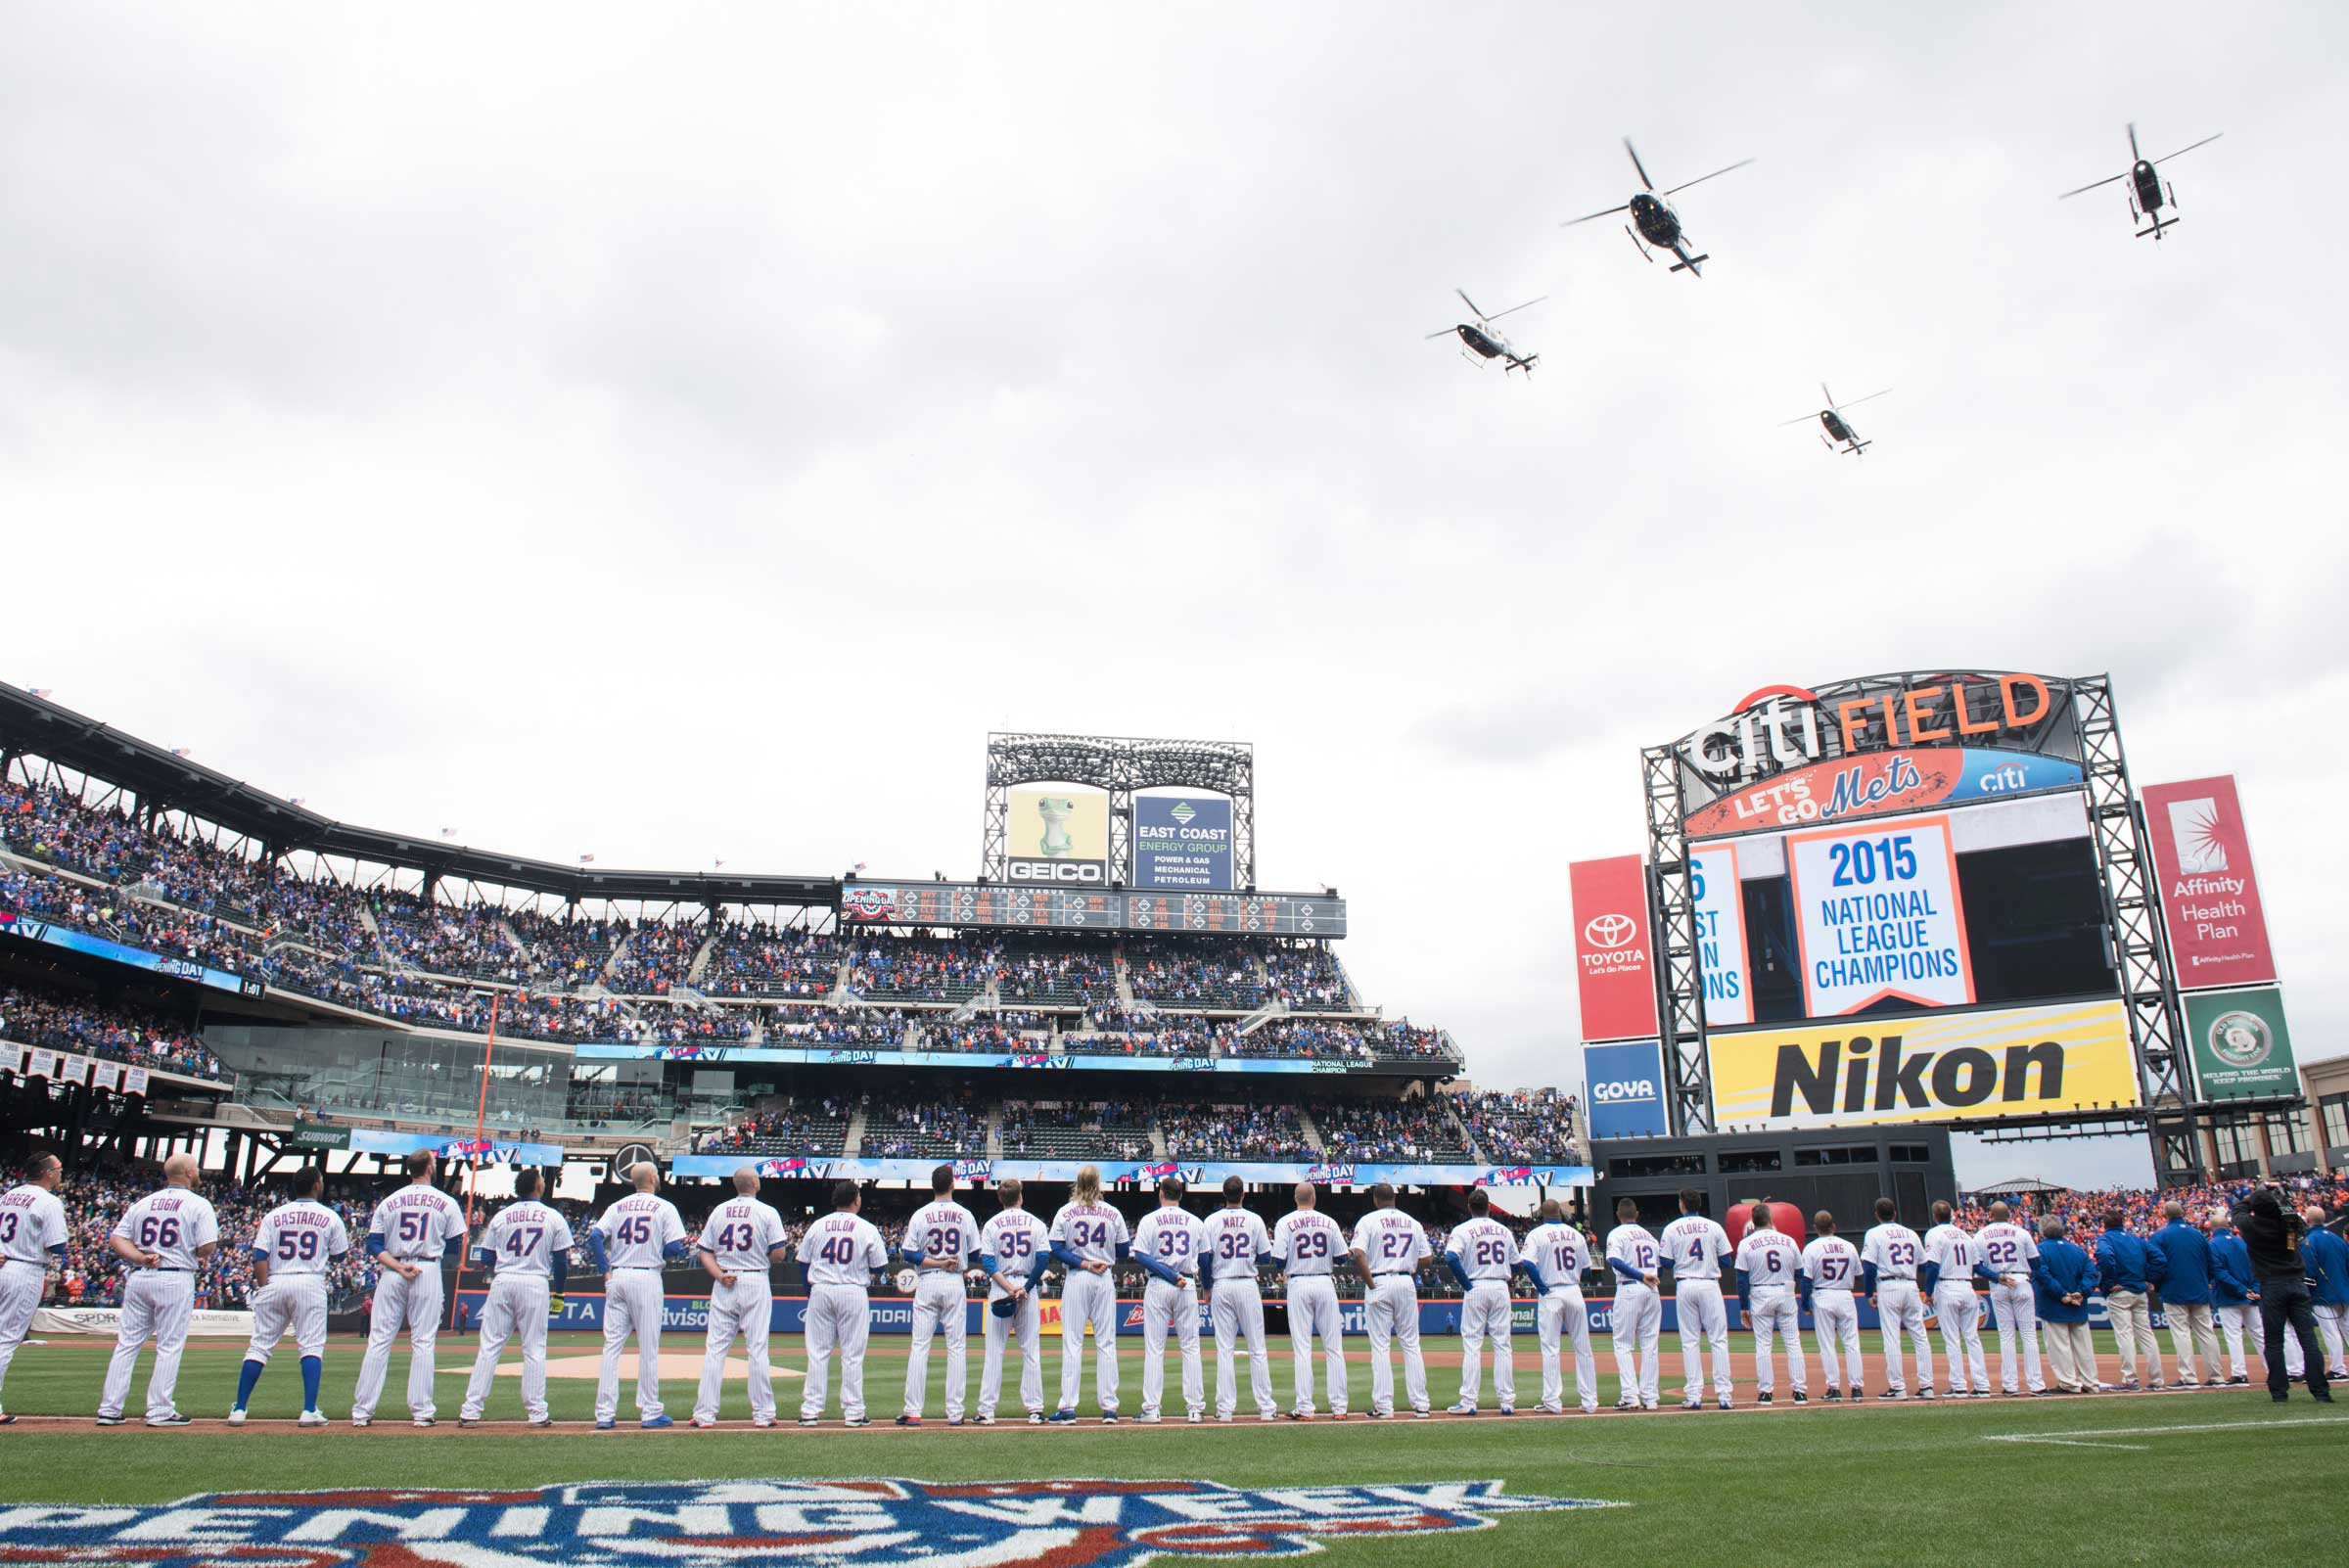 NYPD helicopters fly over Citi Field at the opening day ceremony for the New York Mets.